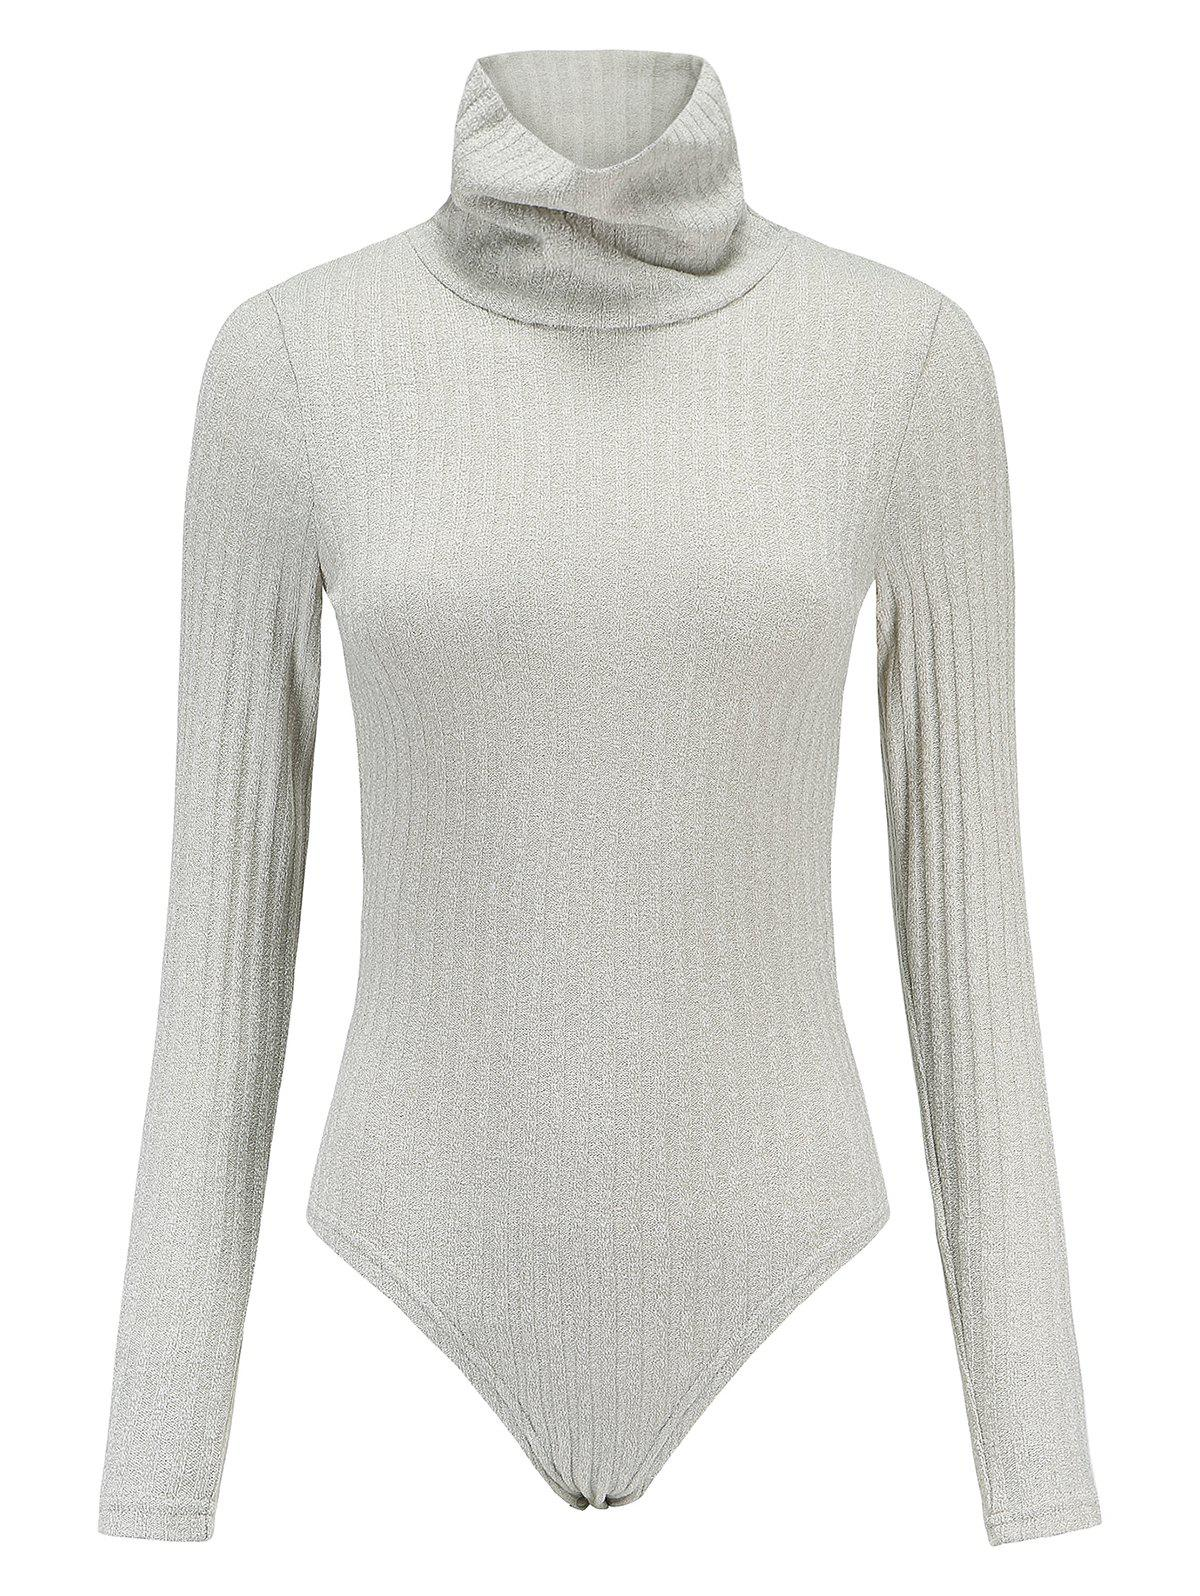 Unique High Neck Long Sleeve Knitted Bodysuit